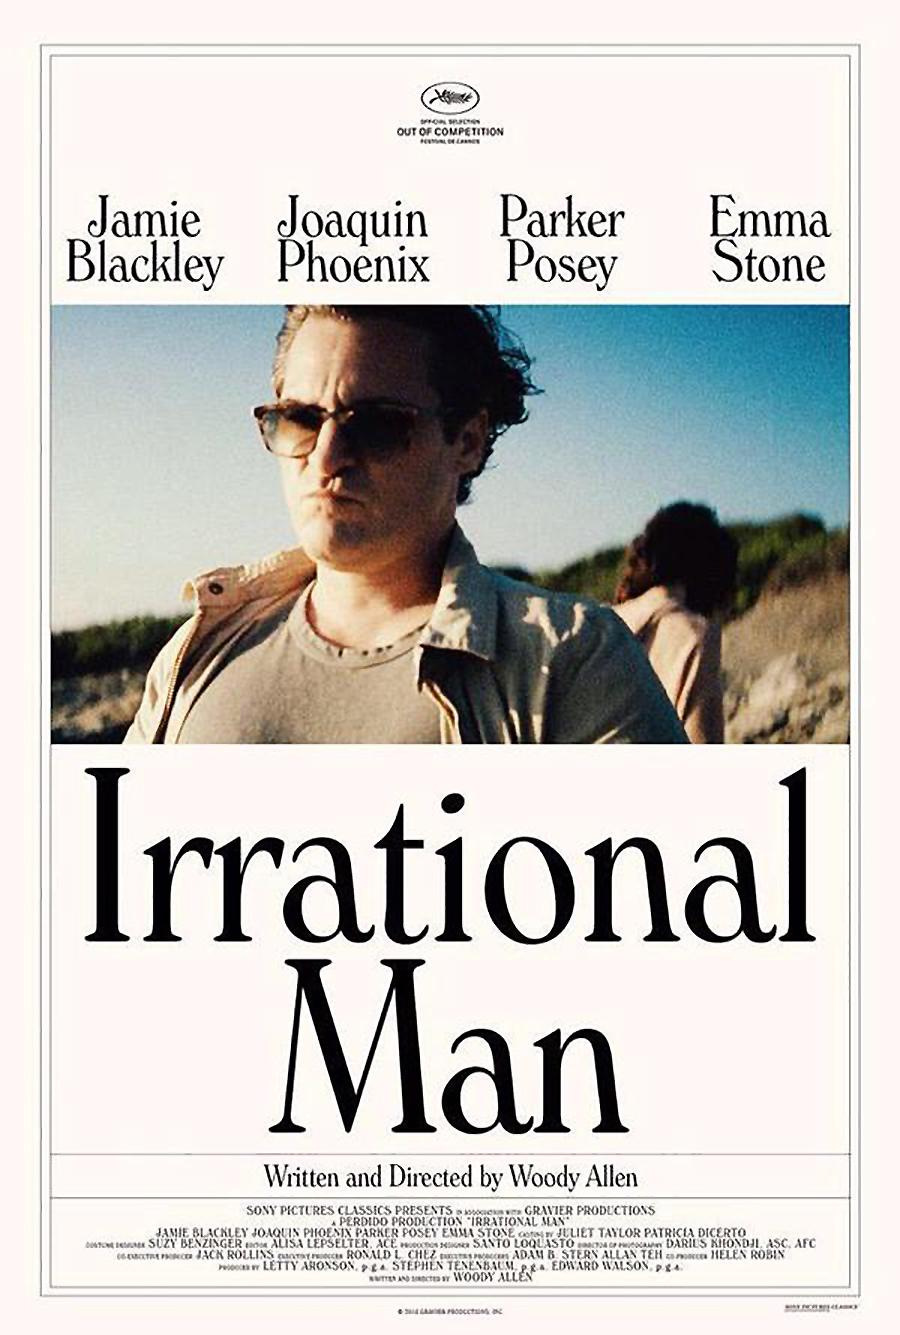 Download Film Irrational Man 2015